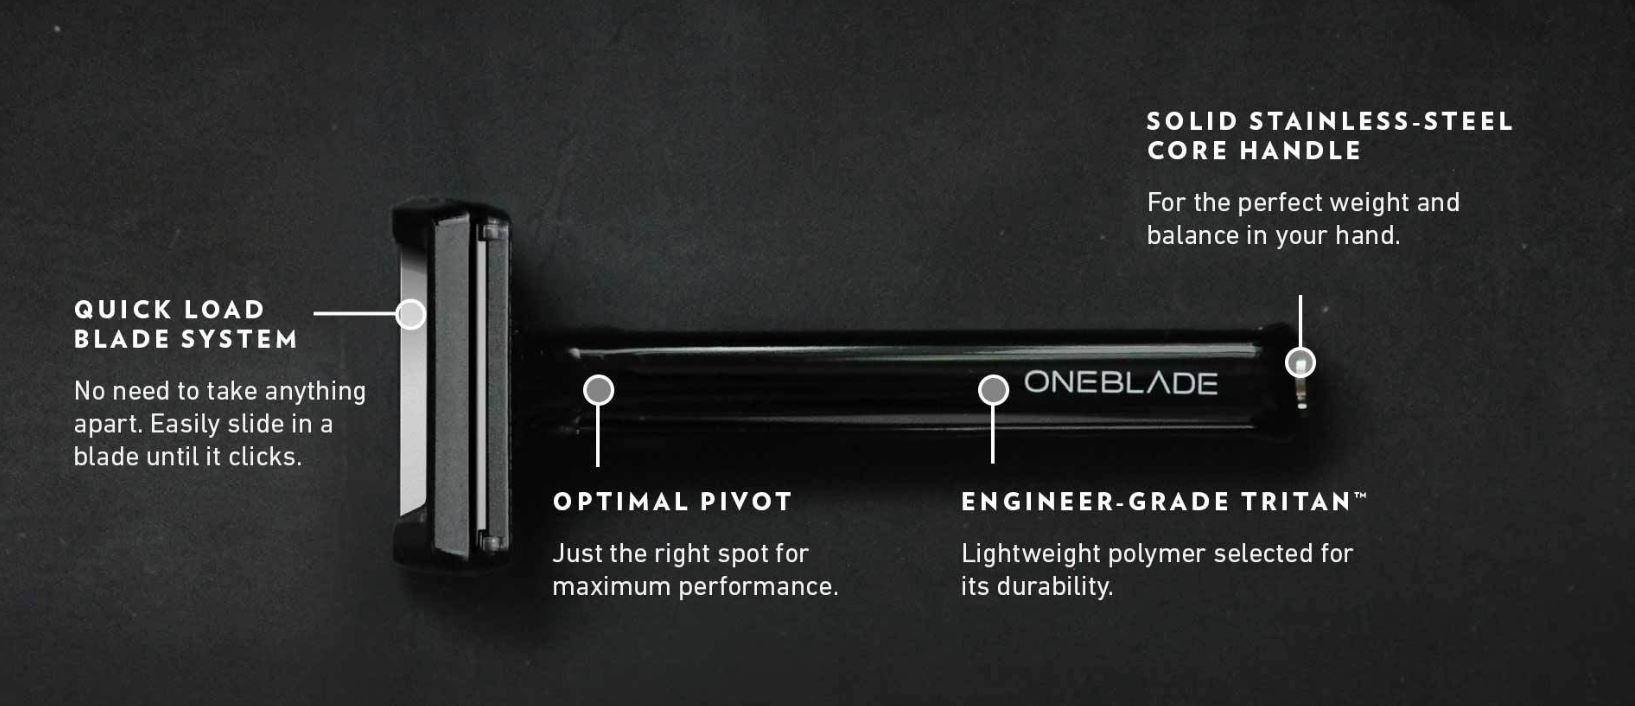 ONEBLADE CORE BLACK TIE SHAVE KIT, CORE Razor, Stand, Shave brush, Shaving cream, After shave balm by OneBlade